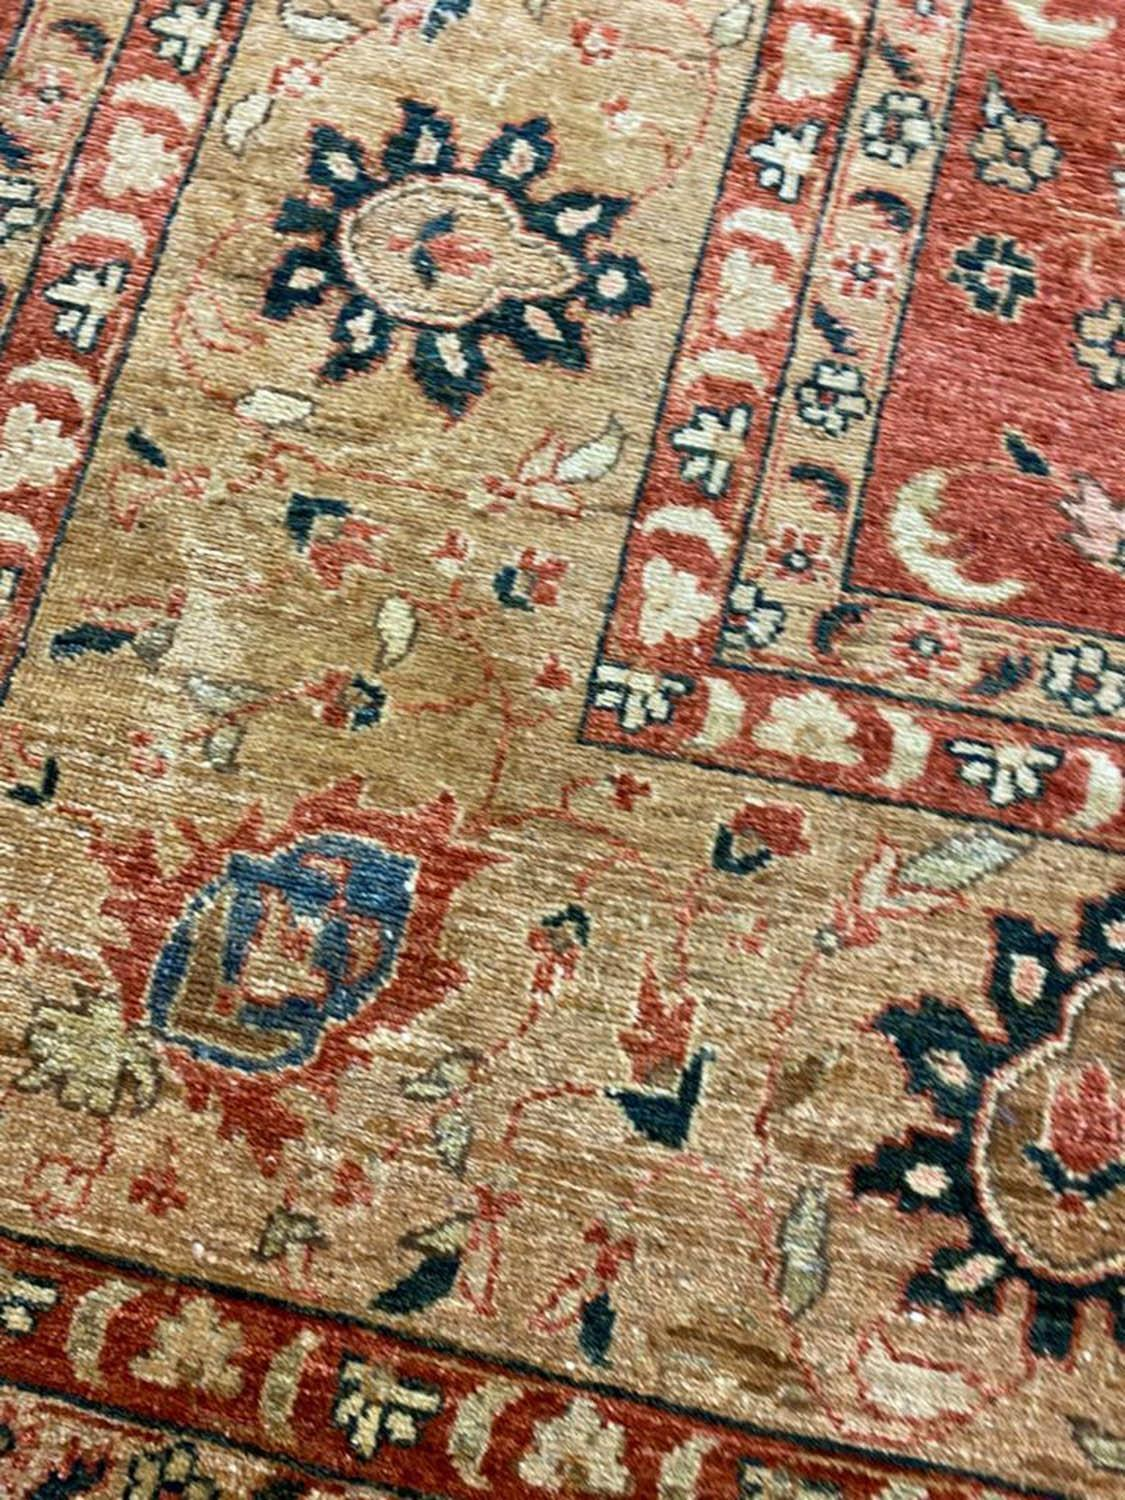 FINE BAKSHAISH DESIGN CARPET, 371cm x 273cm. - Image 4 of 5